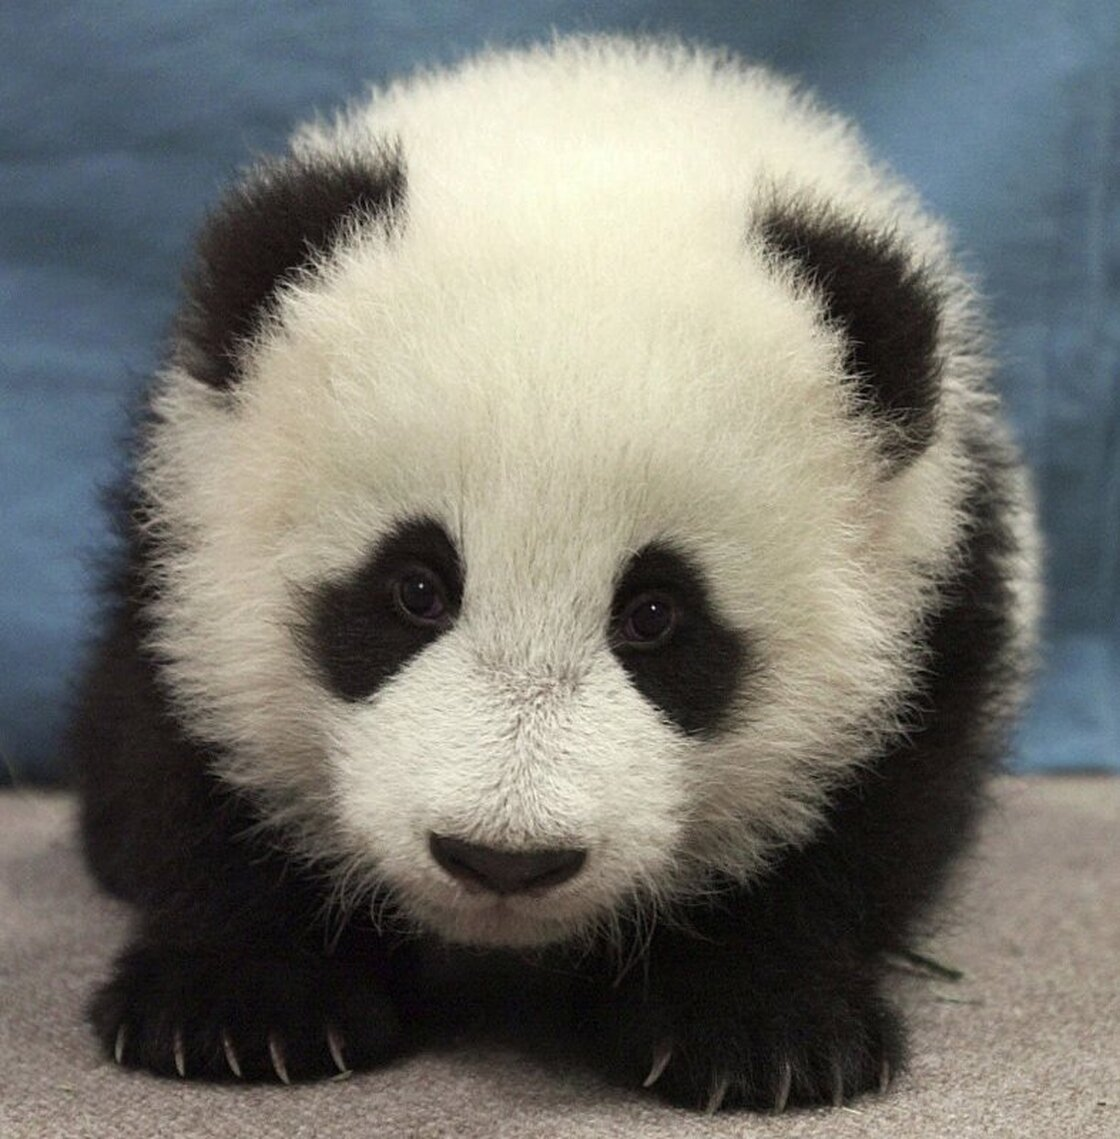 16-week-old giant panda cub, Hua Mei, at the San Diego Zoo.